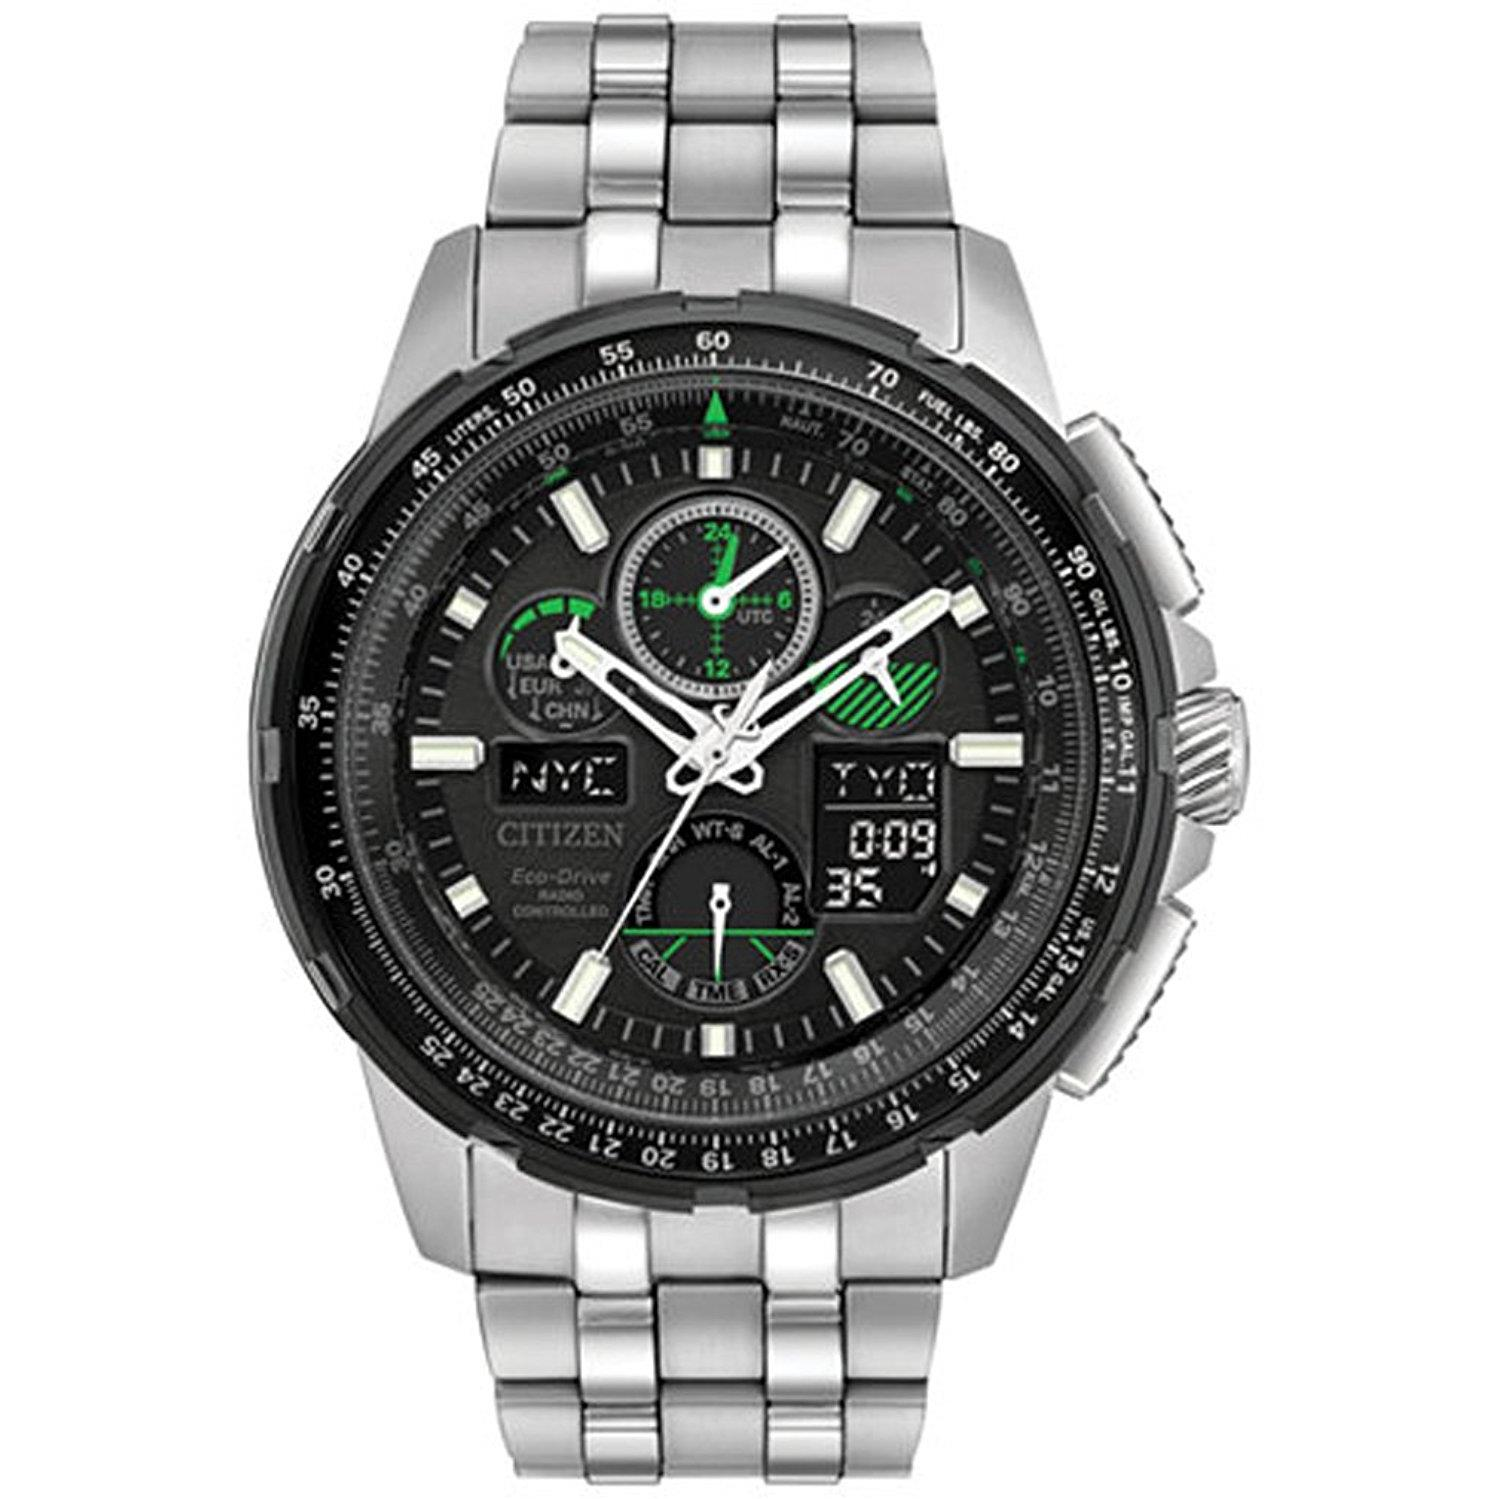 Citizen Eco-Drive Skyhawk Chronograph Mens Watch JY8051-59E